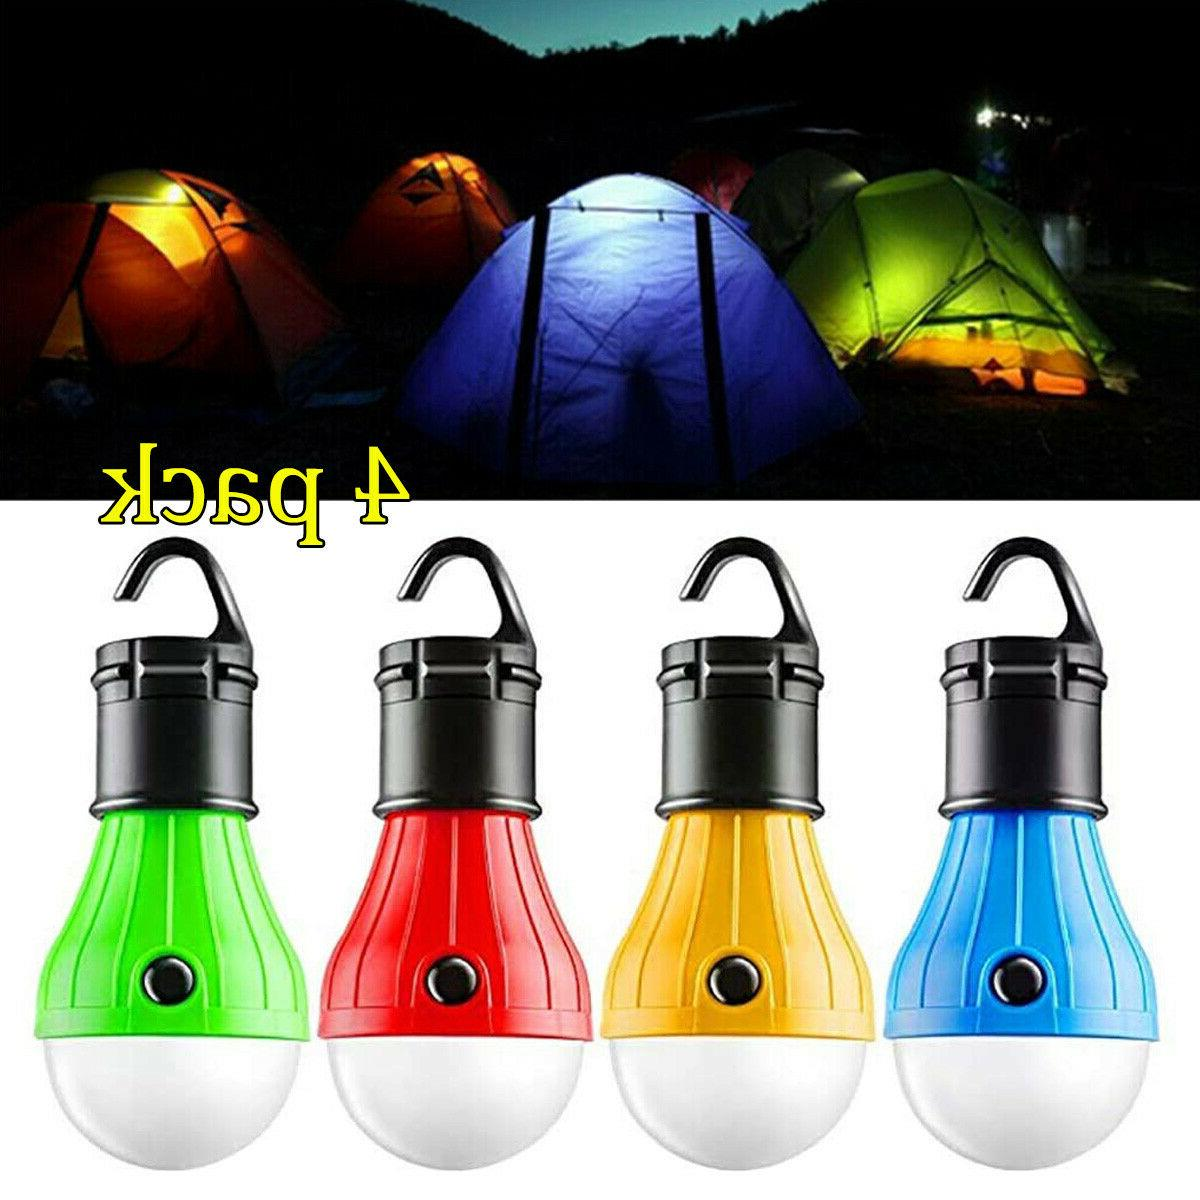 4pack led portable camping tent lamp emergency